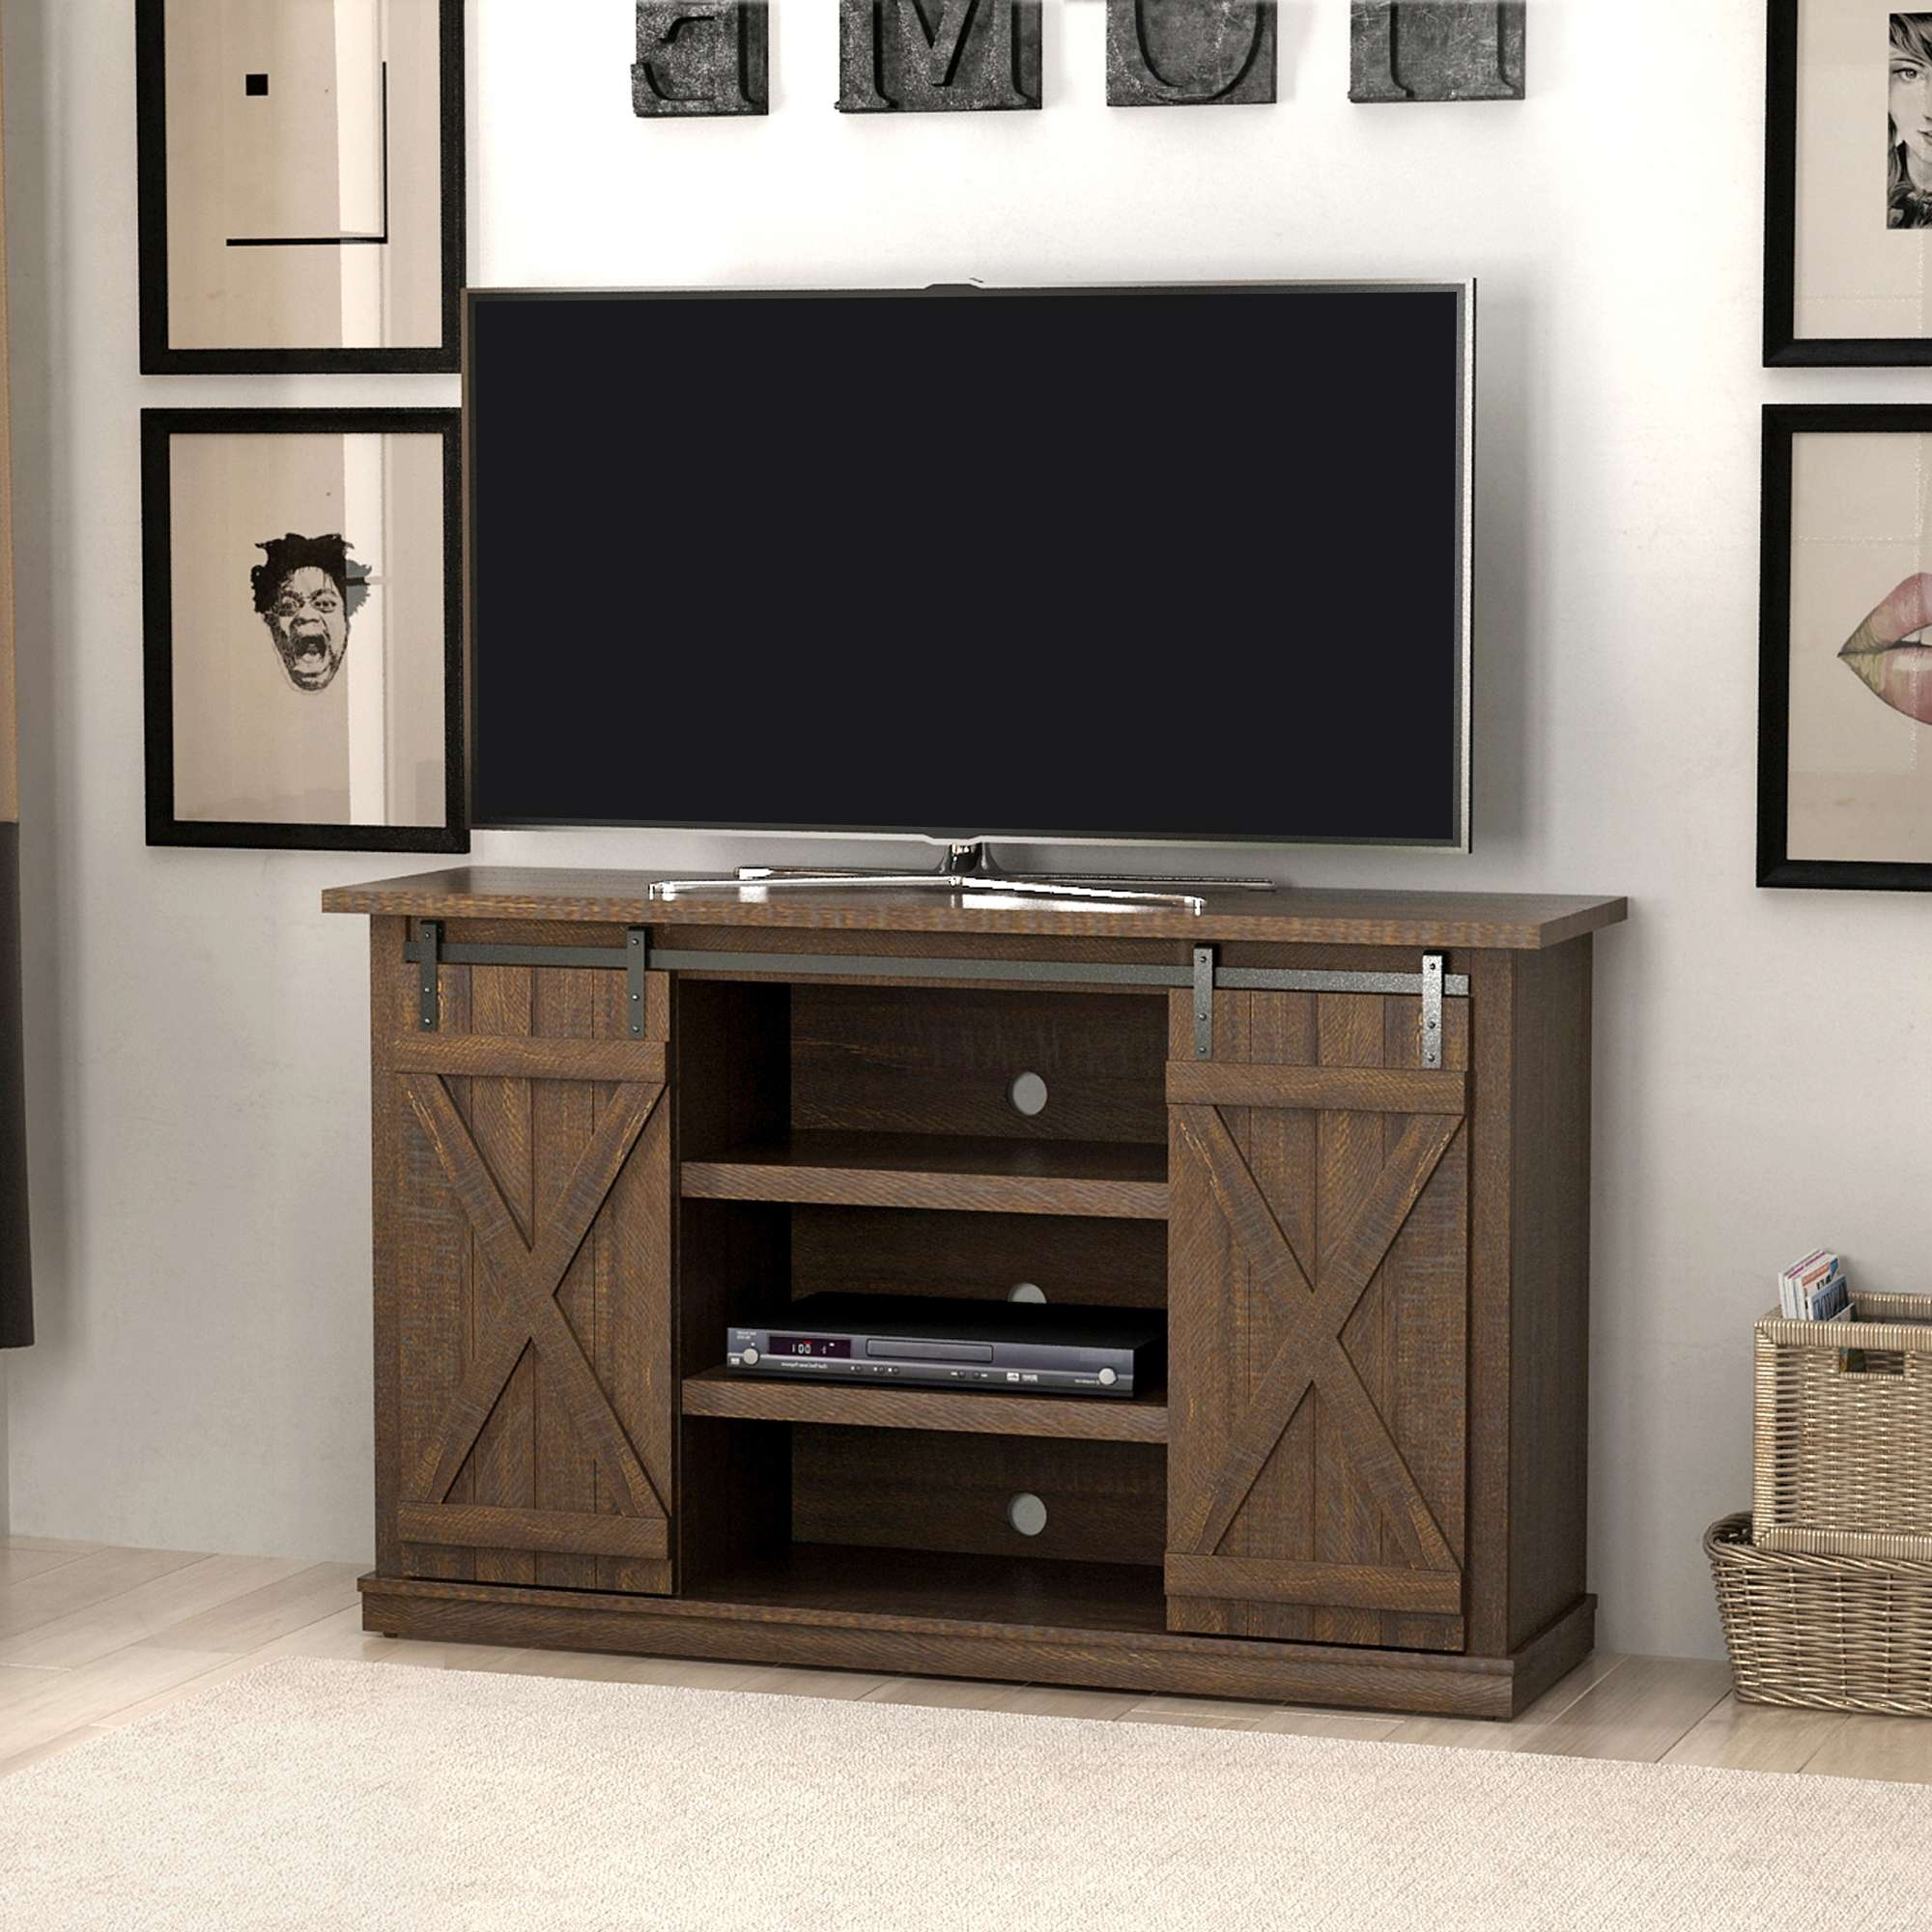 Tv Stands – Walmart For 24 Inch Tv Stands (View 4 of 15)